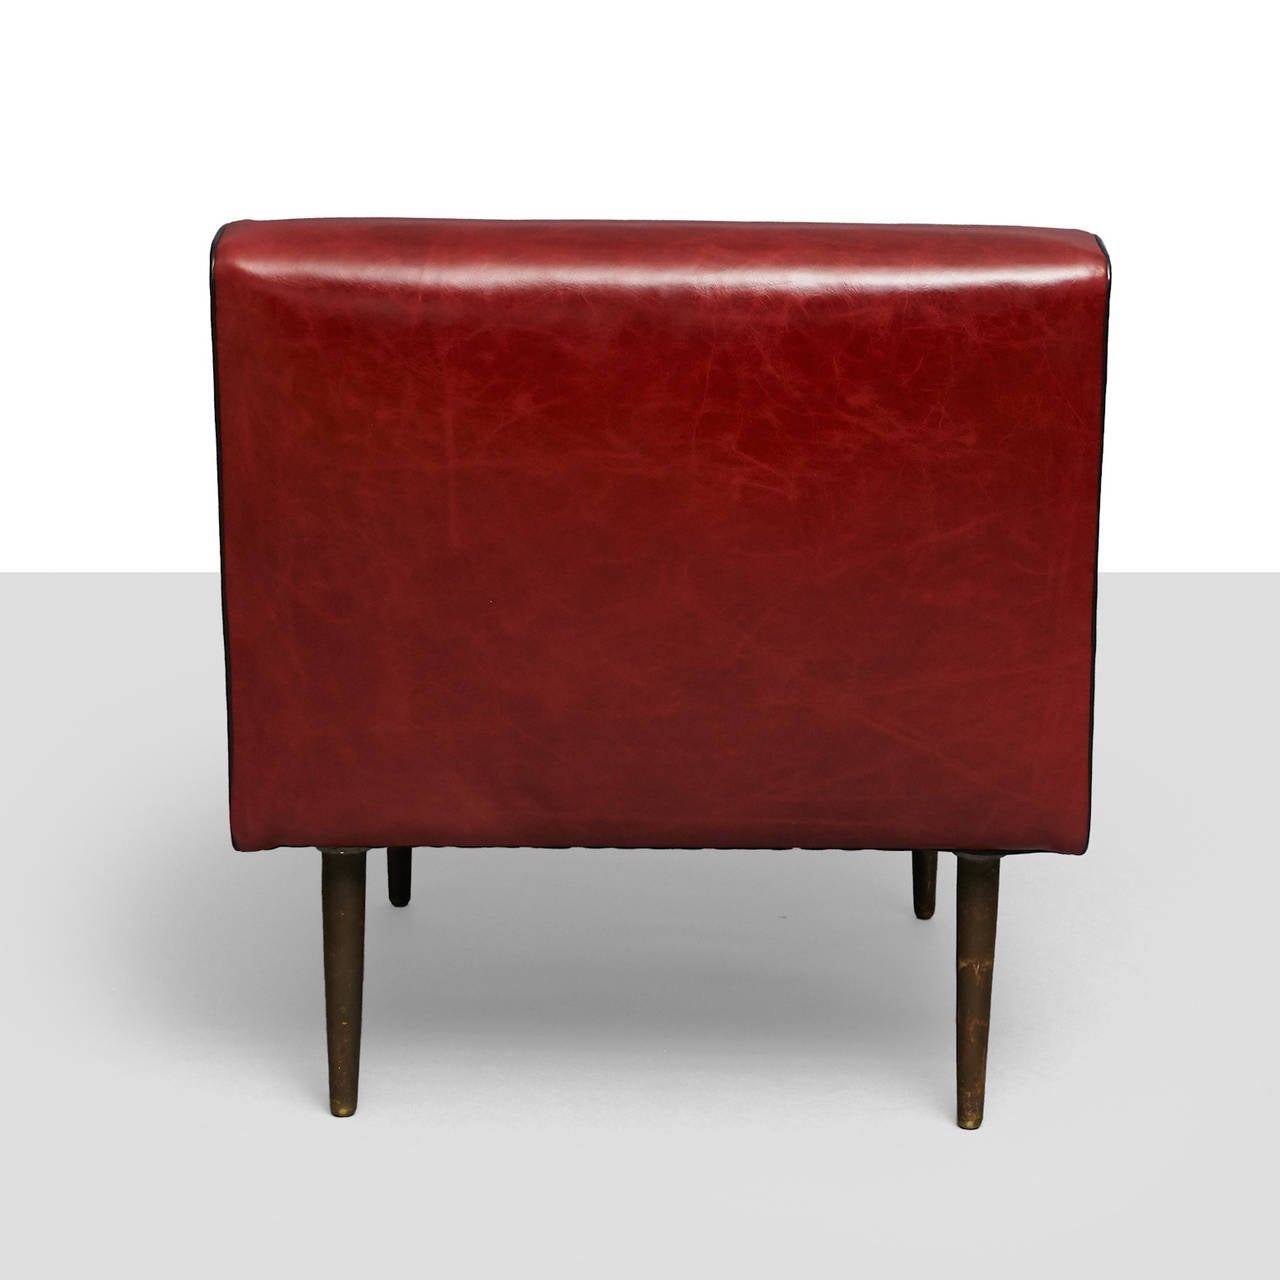 Edward Wormley Channel Back Chairs, Model No. 4827 In Excellent Condition For Sale In San Francisco, CA